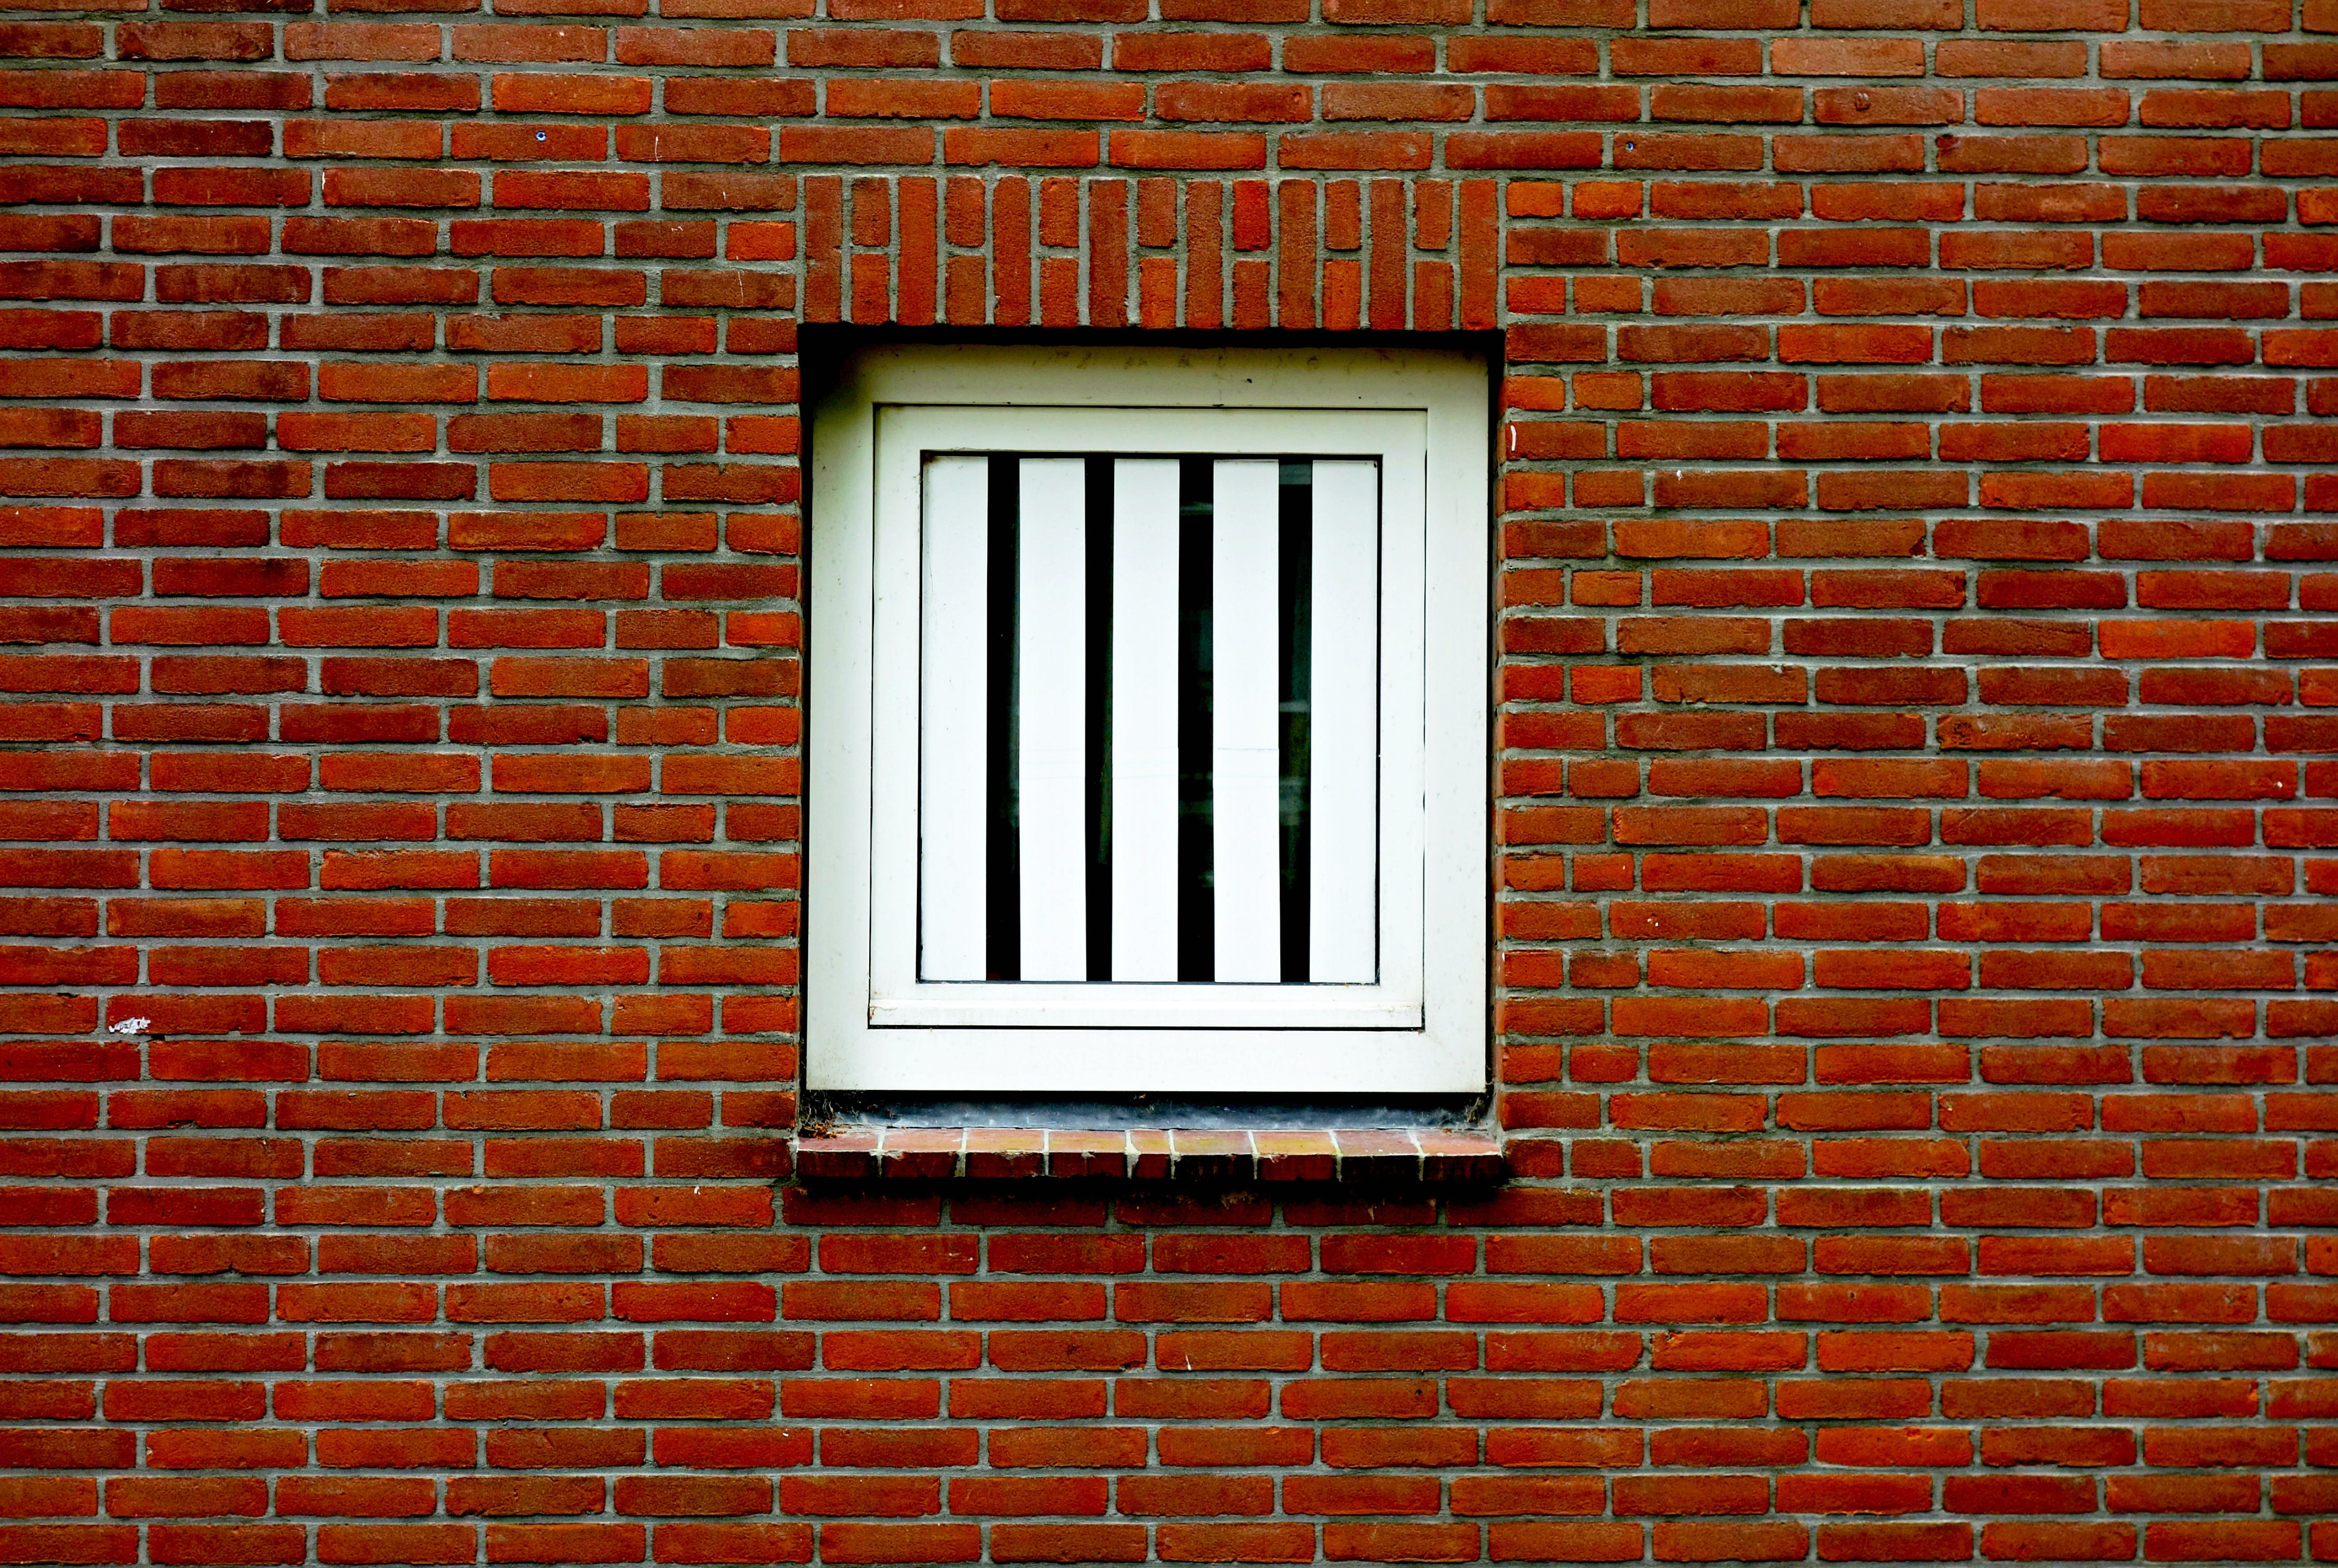 Free stock photo of wall, house, window, red brick